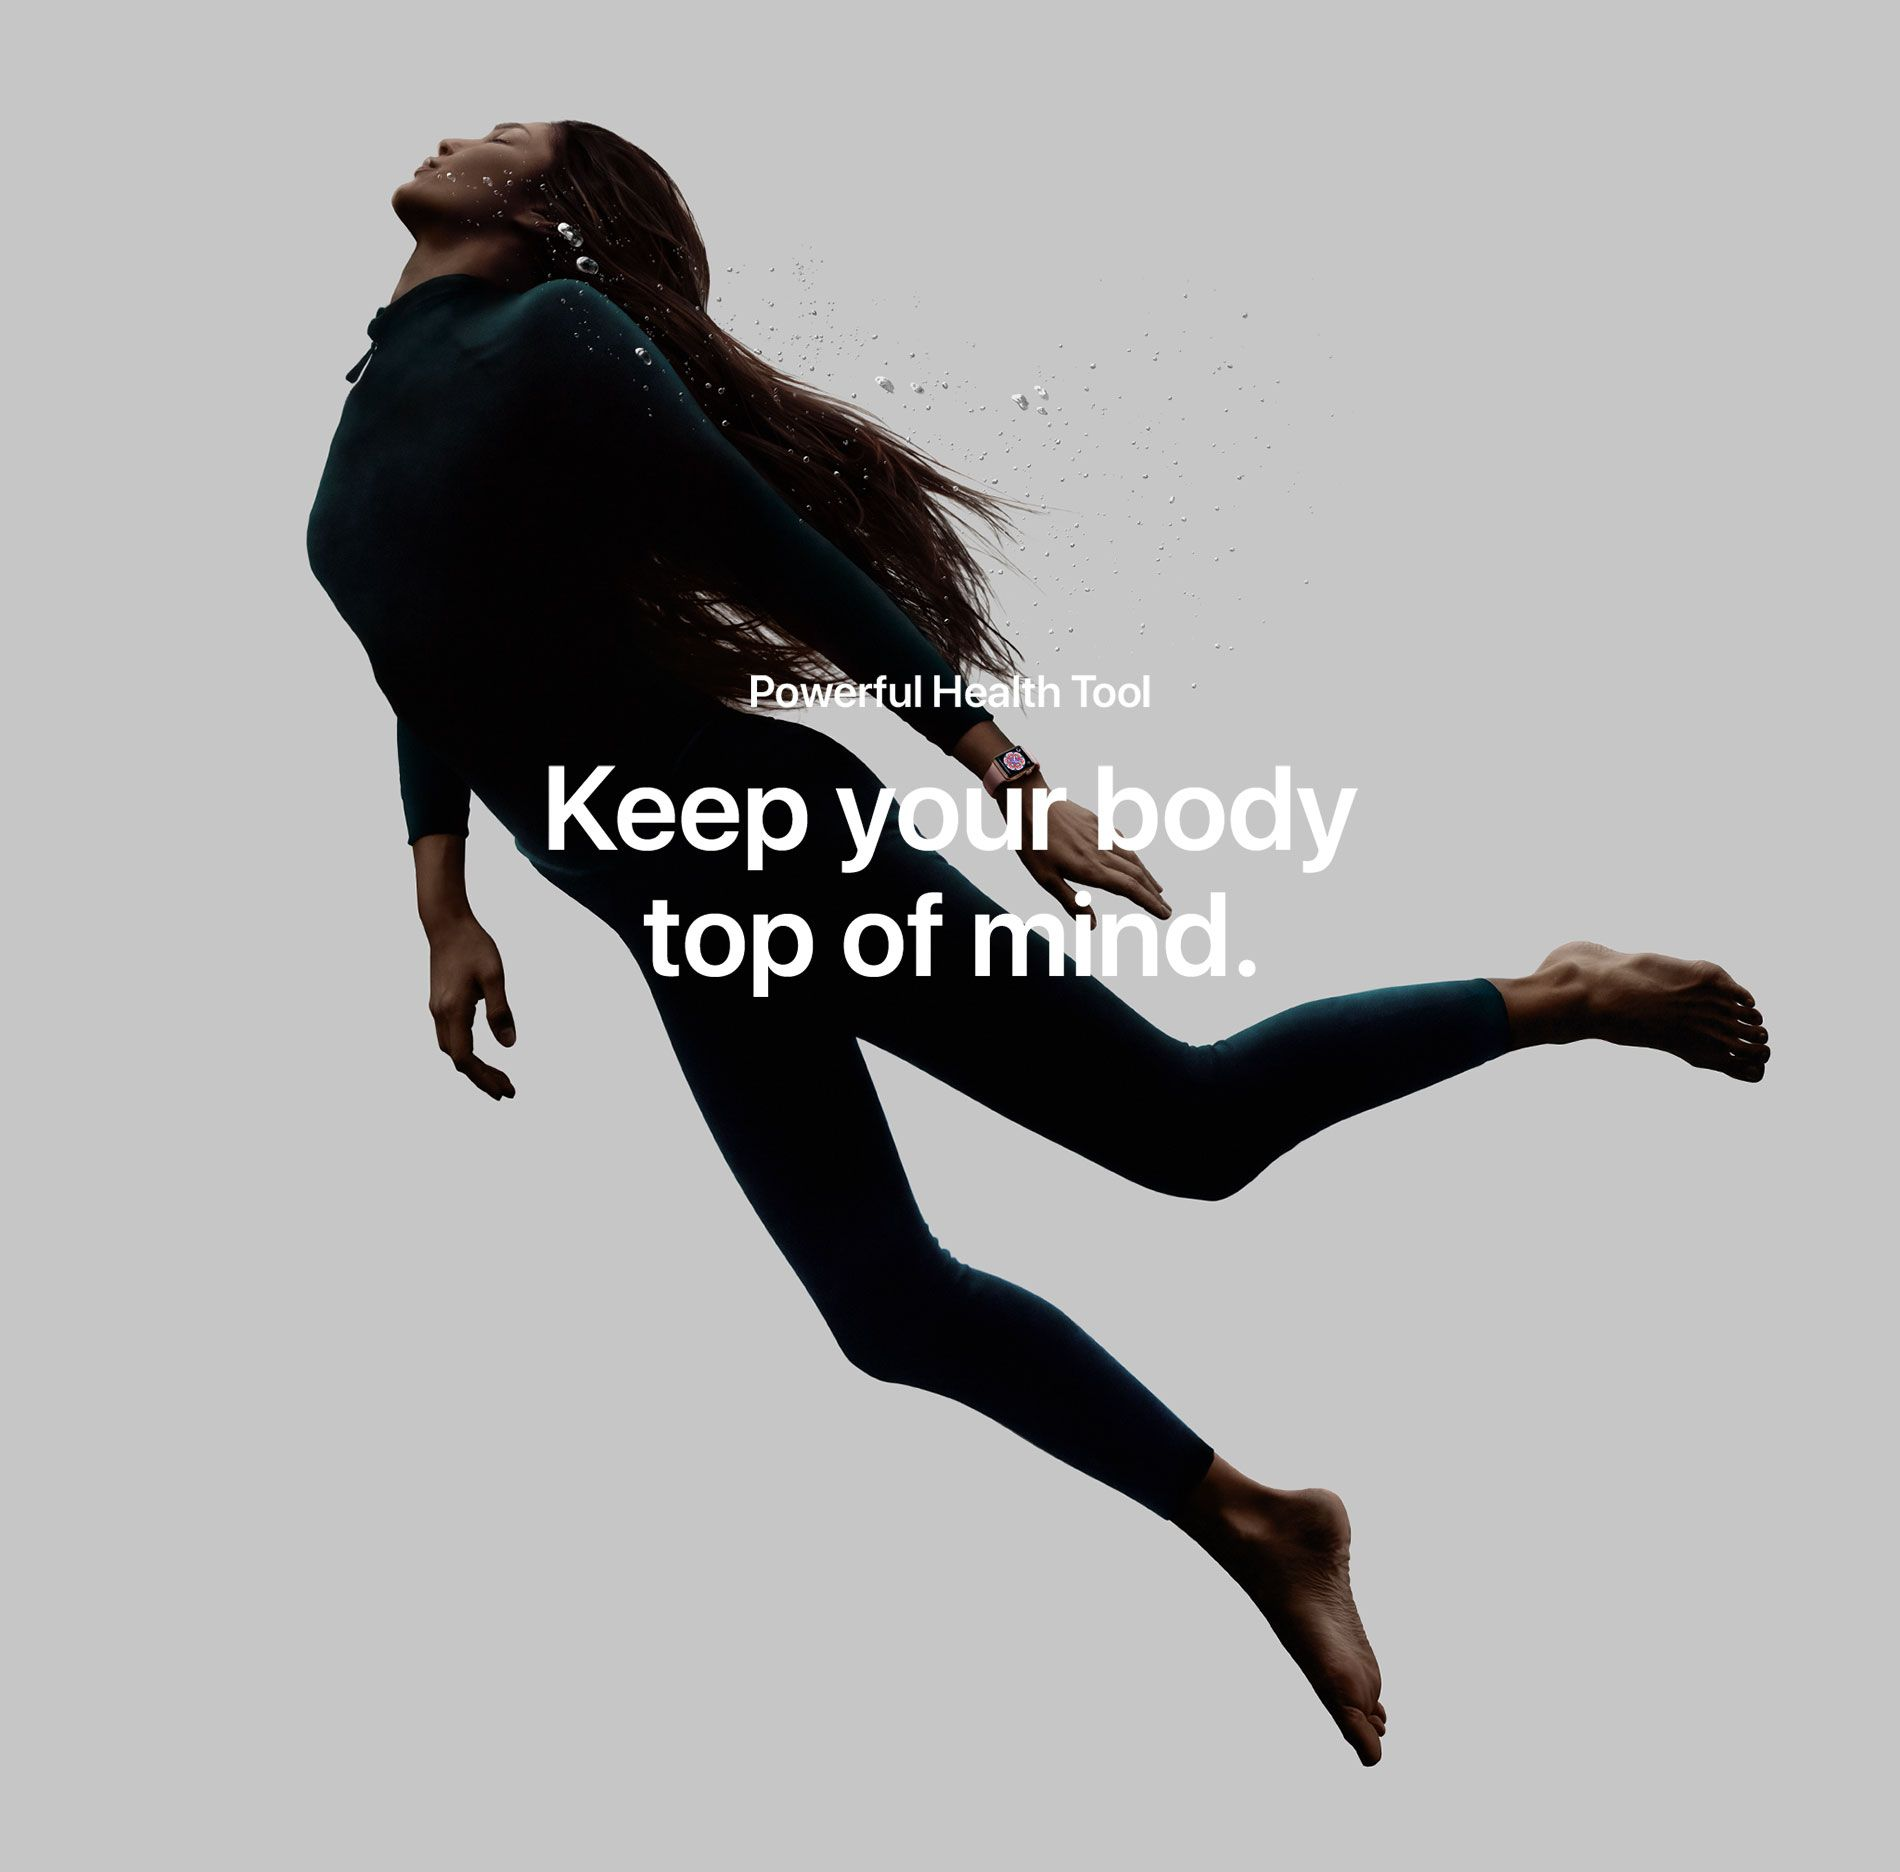 Powerful Health Tool - Keep your body top of mind